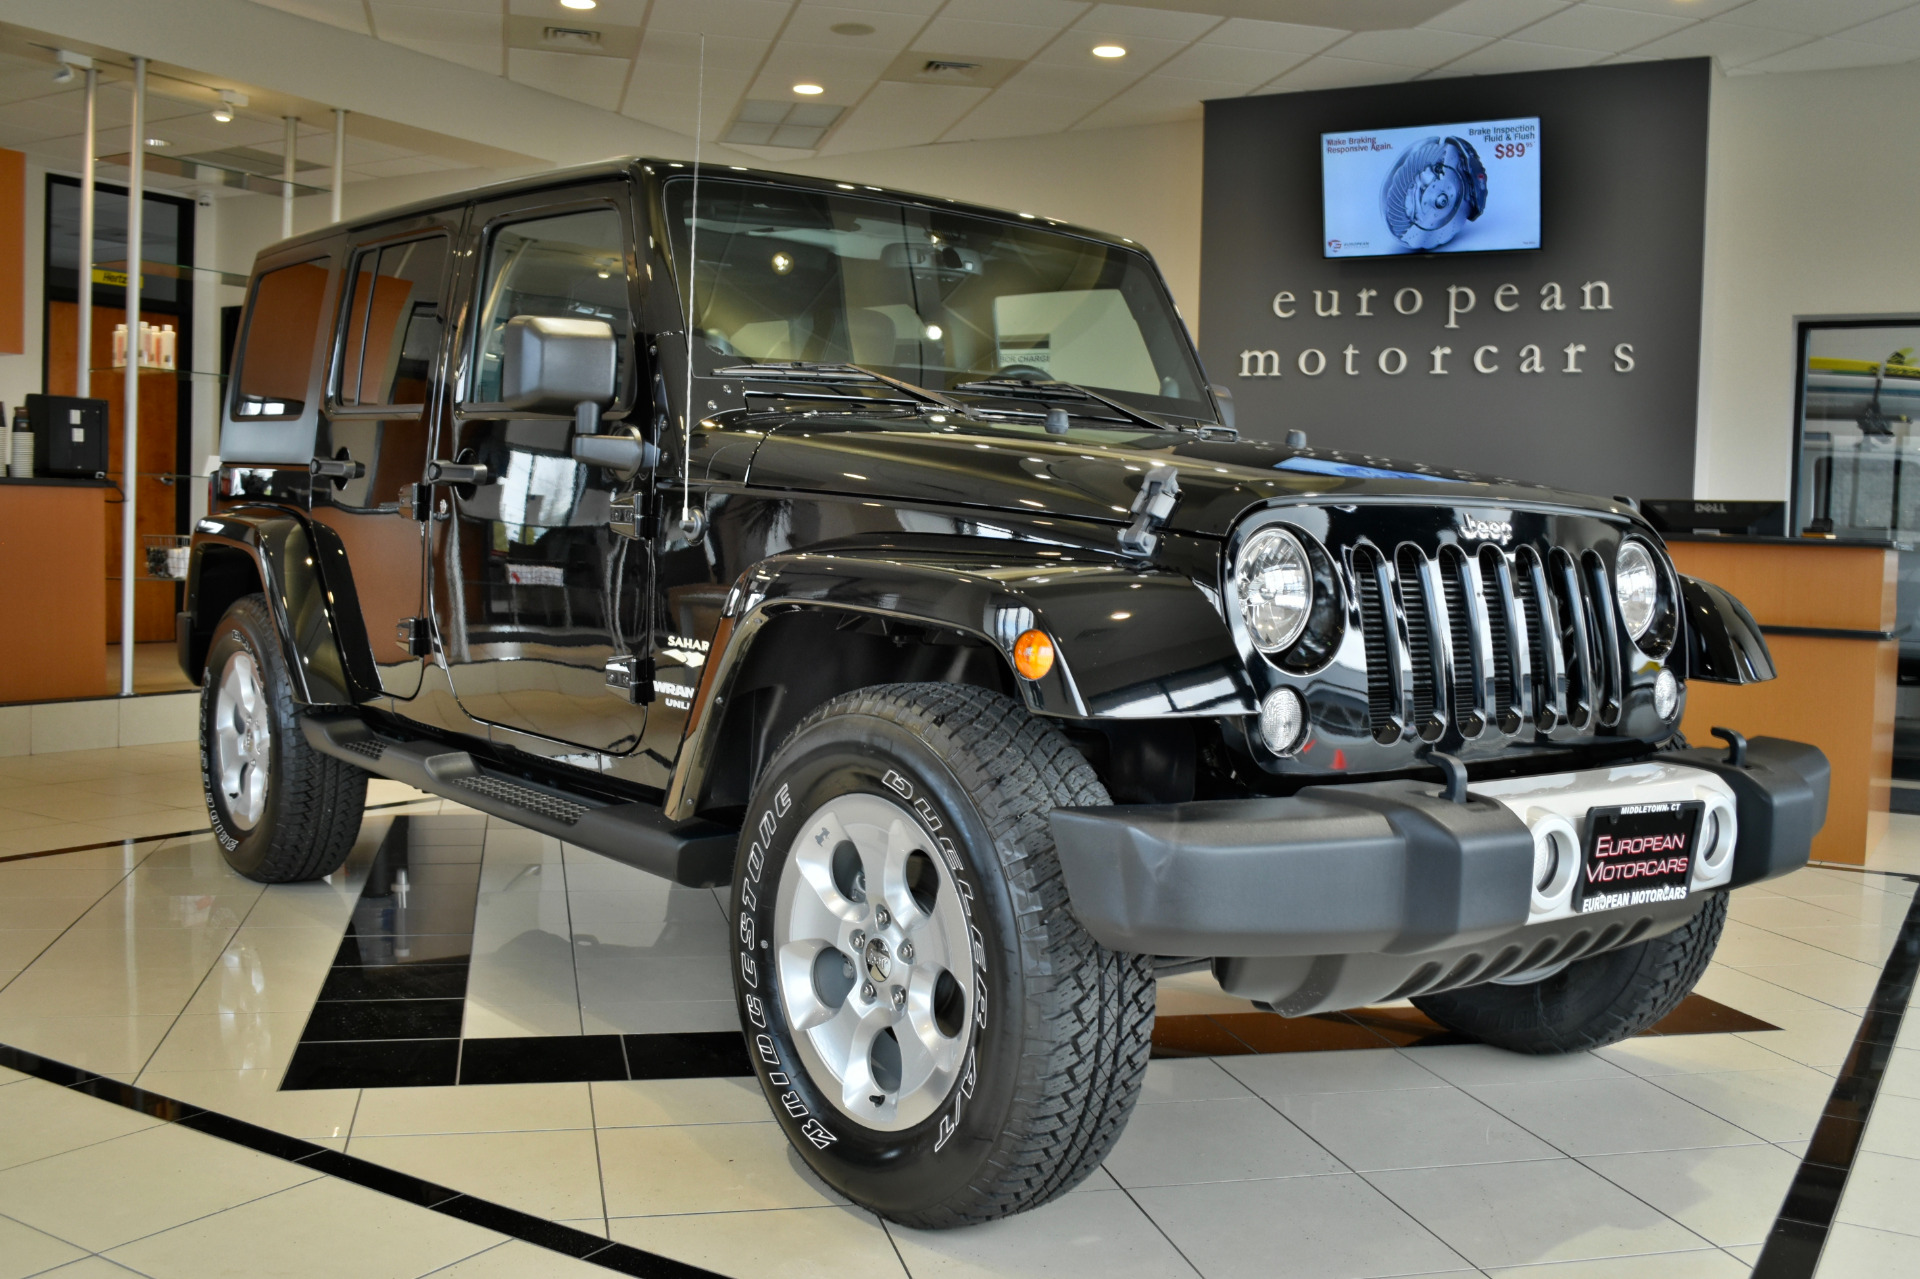 2014 jeep wrangler unlimited sahara for sale near middletown ct ct jeep dealer stock 108393. Black Bedroom Furniture Sets. Home Design Ideas